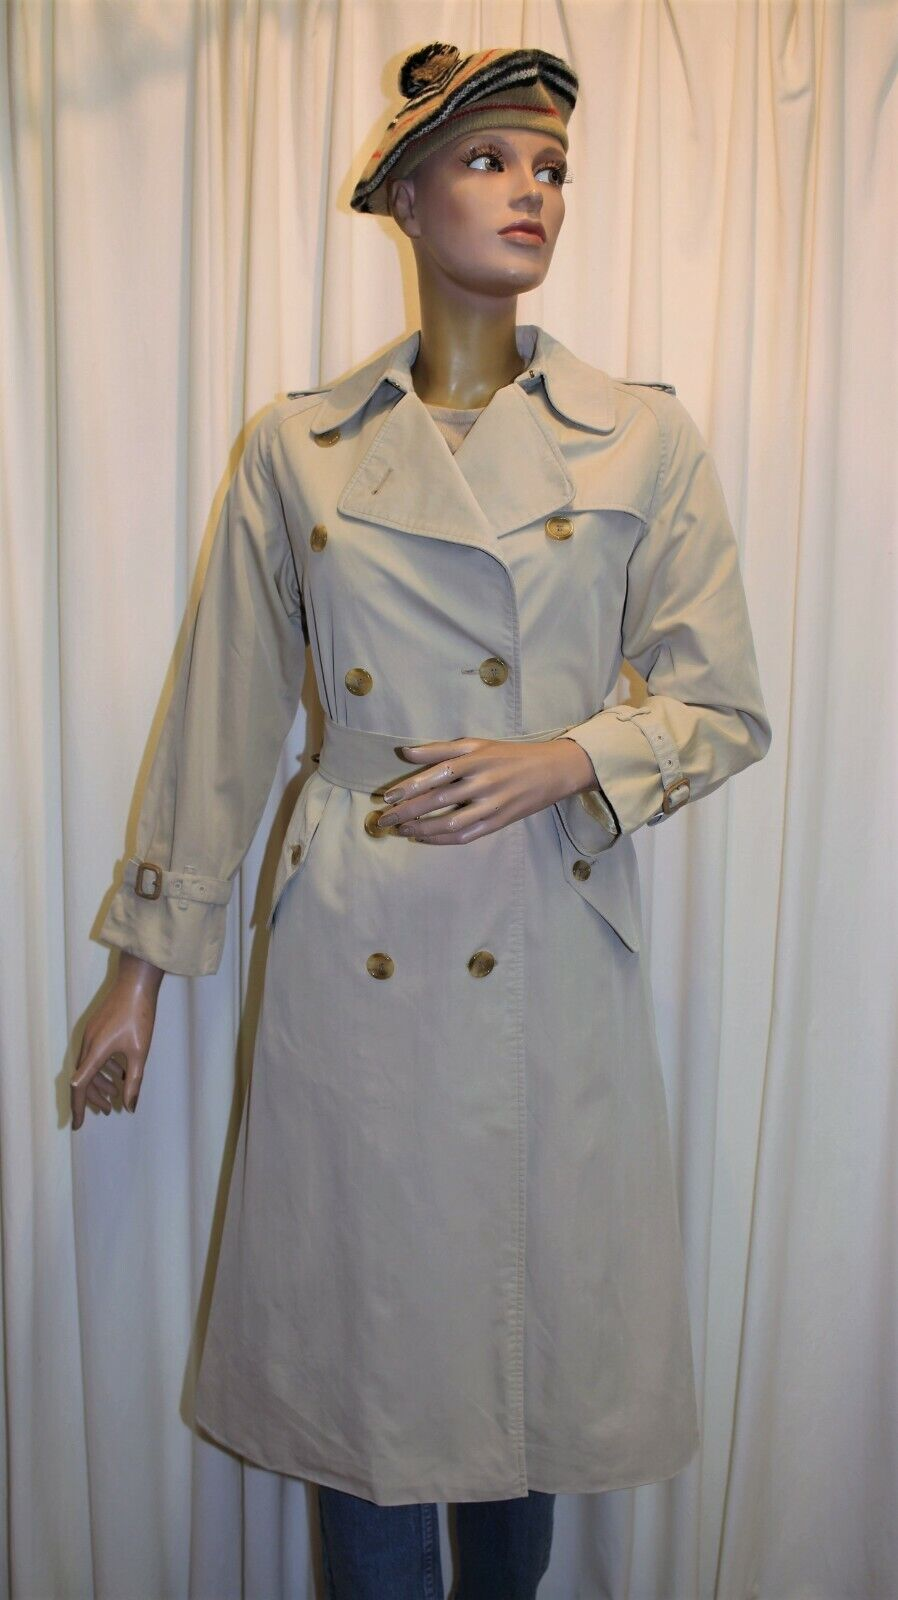 Trench imperméable burberry's vintage 70's 100% coton écru t38 made in england